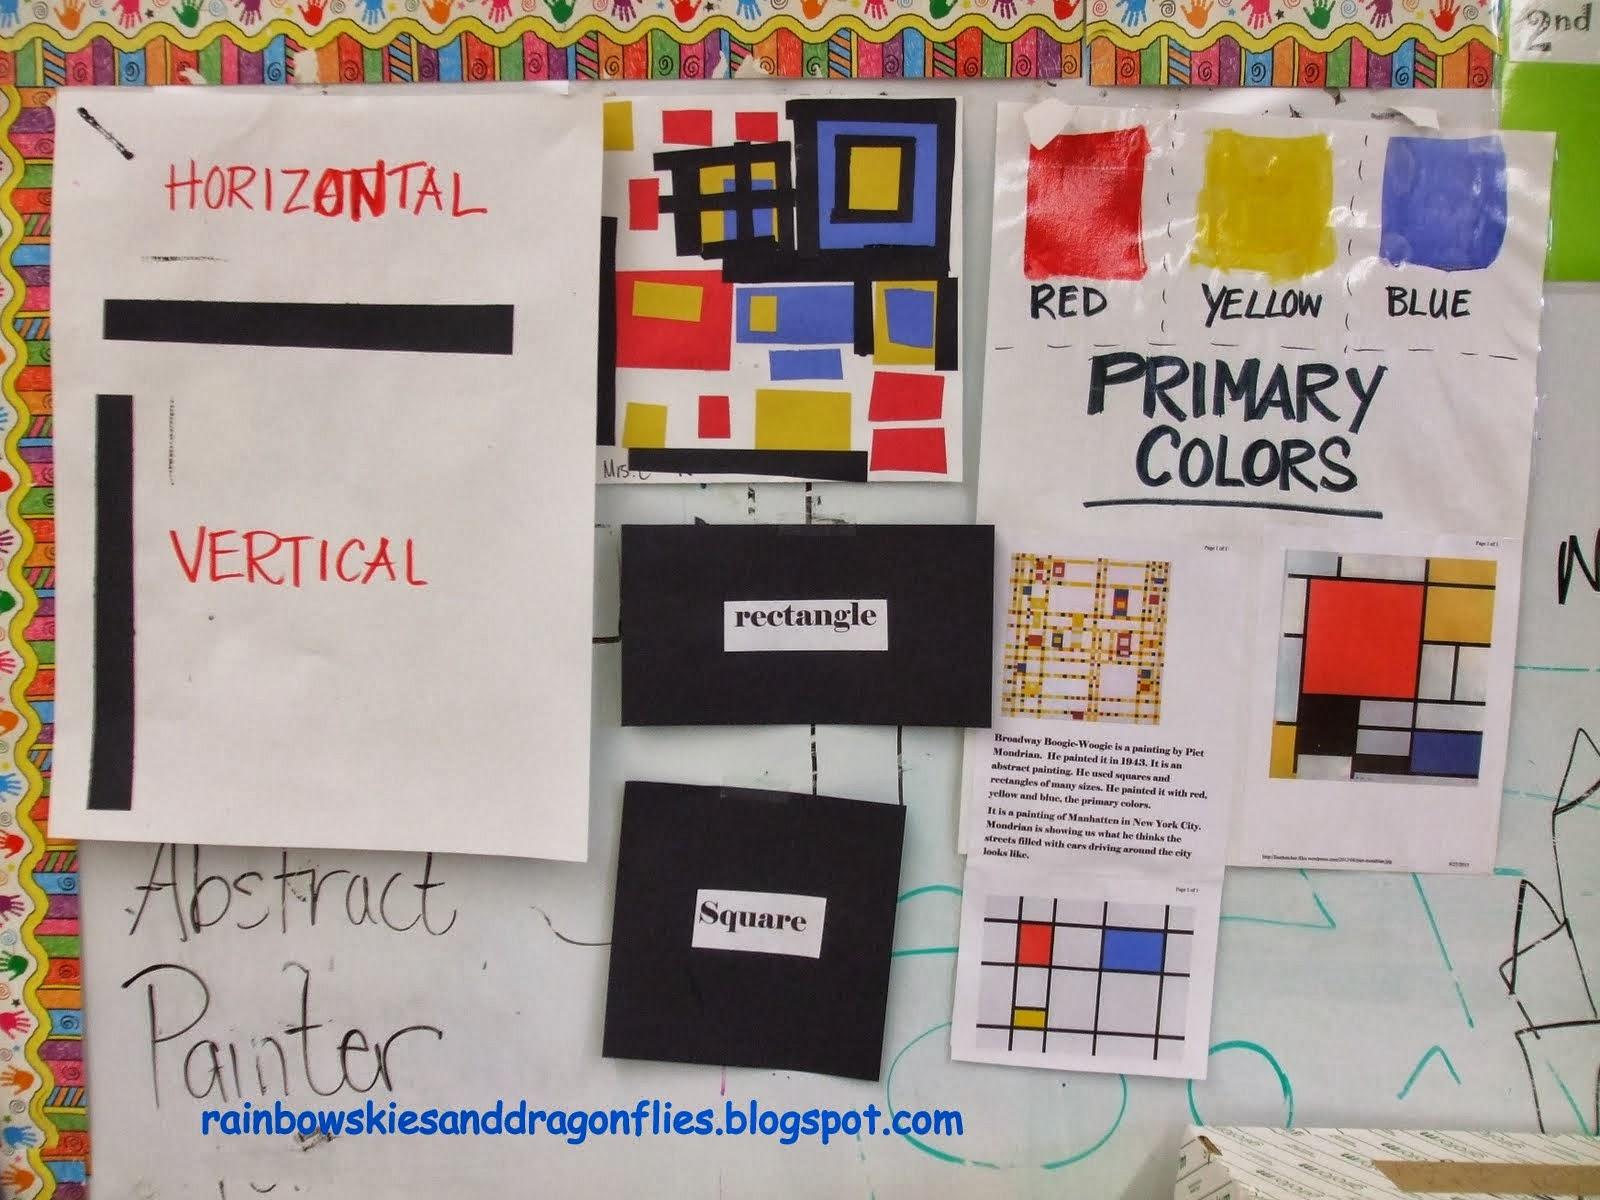 Color wheel art lesson for second grade - Primary Colors And Mondrian Kindergarten And 1st Grade